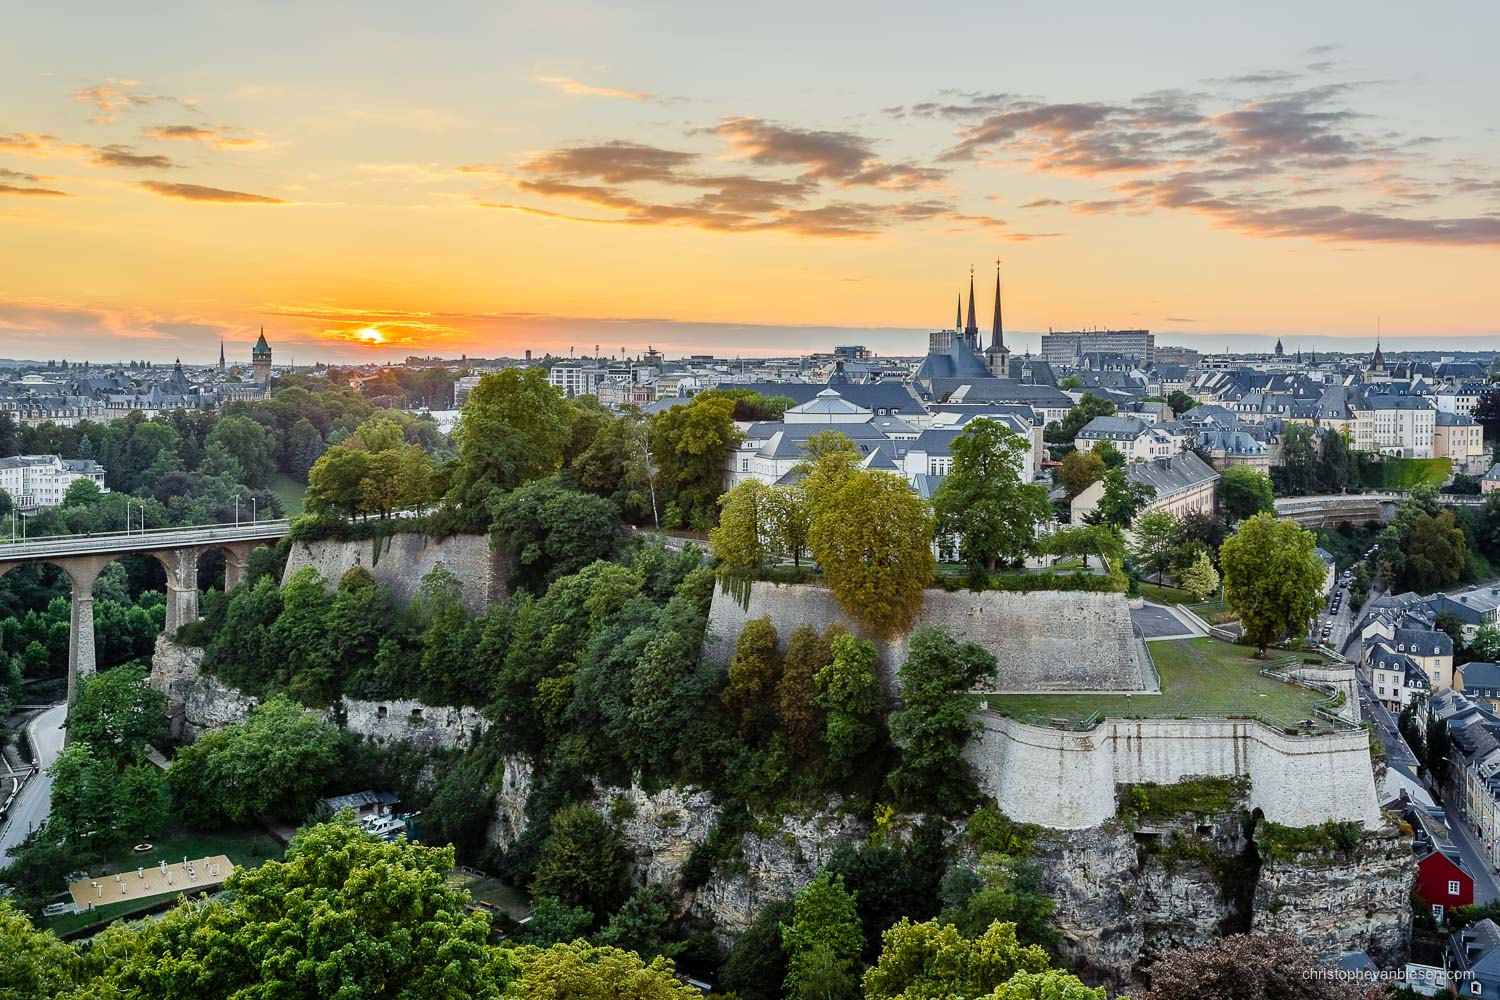 Top 25 photos made in Luxembourg - Luxembourg City's skyline and Corniche